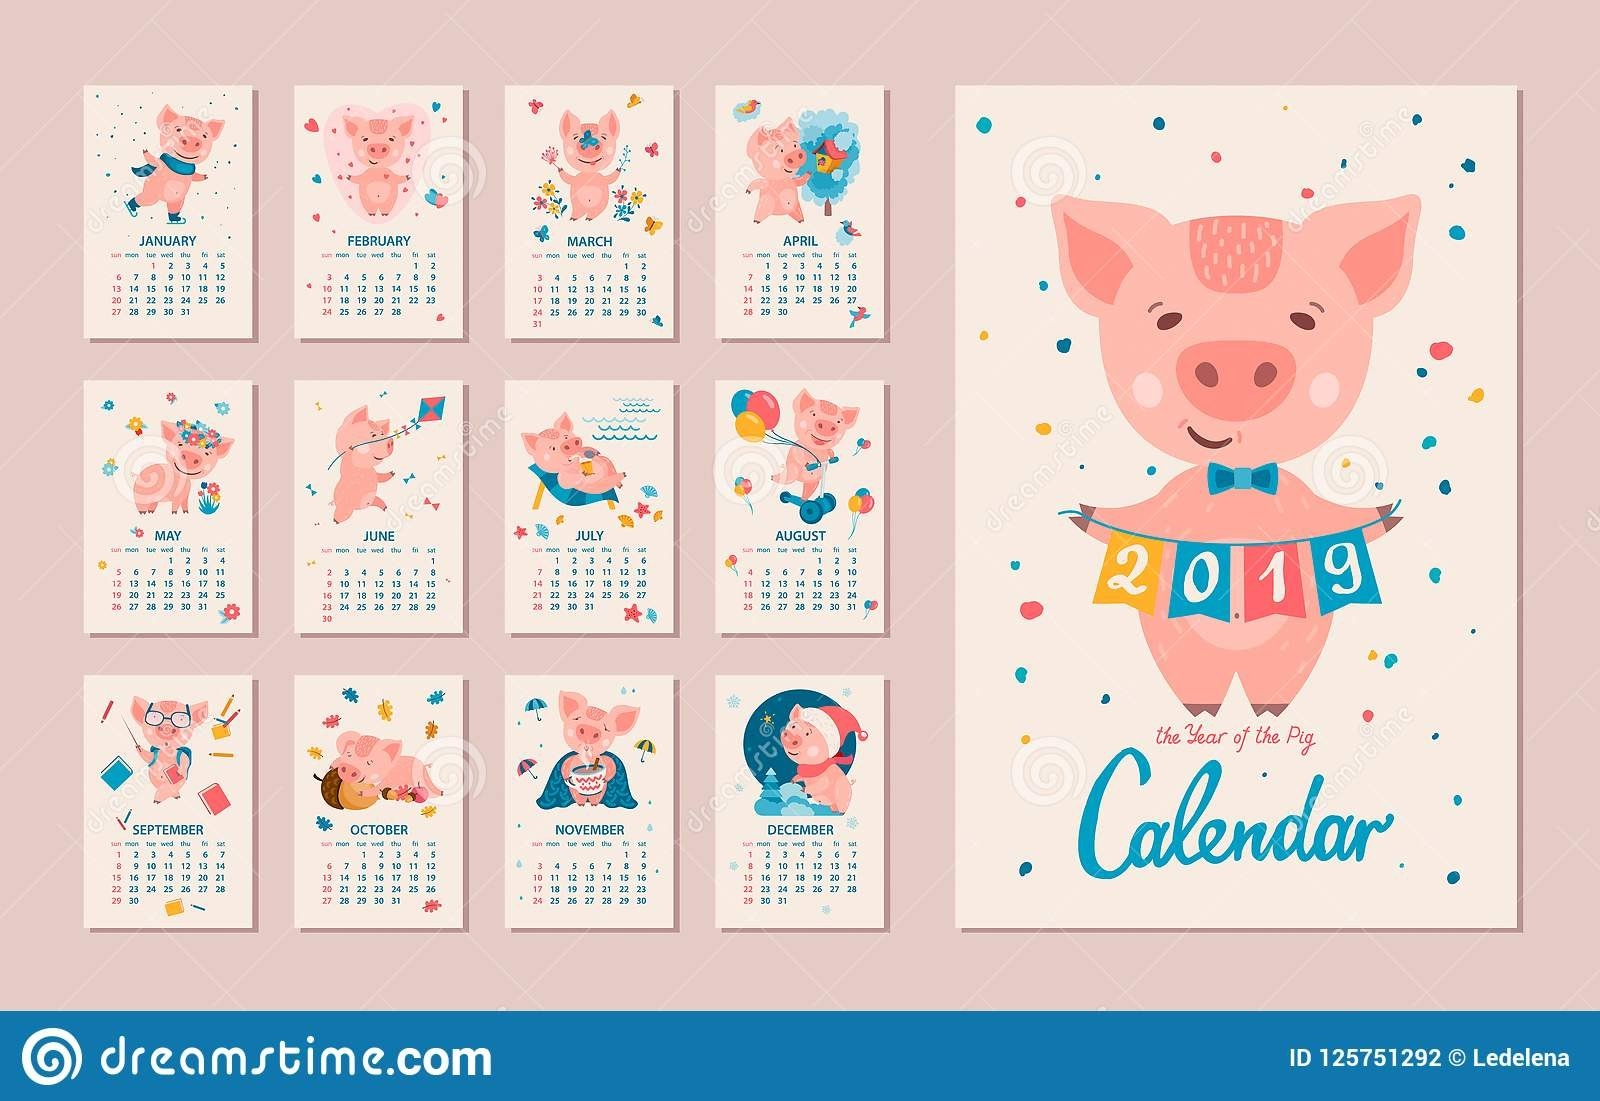 2019 Year Of The Pig Calendar Stock Vector – Illustration Of 2019 Calendar 2019 Year Of The Pig